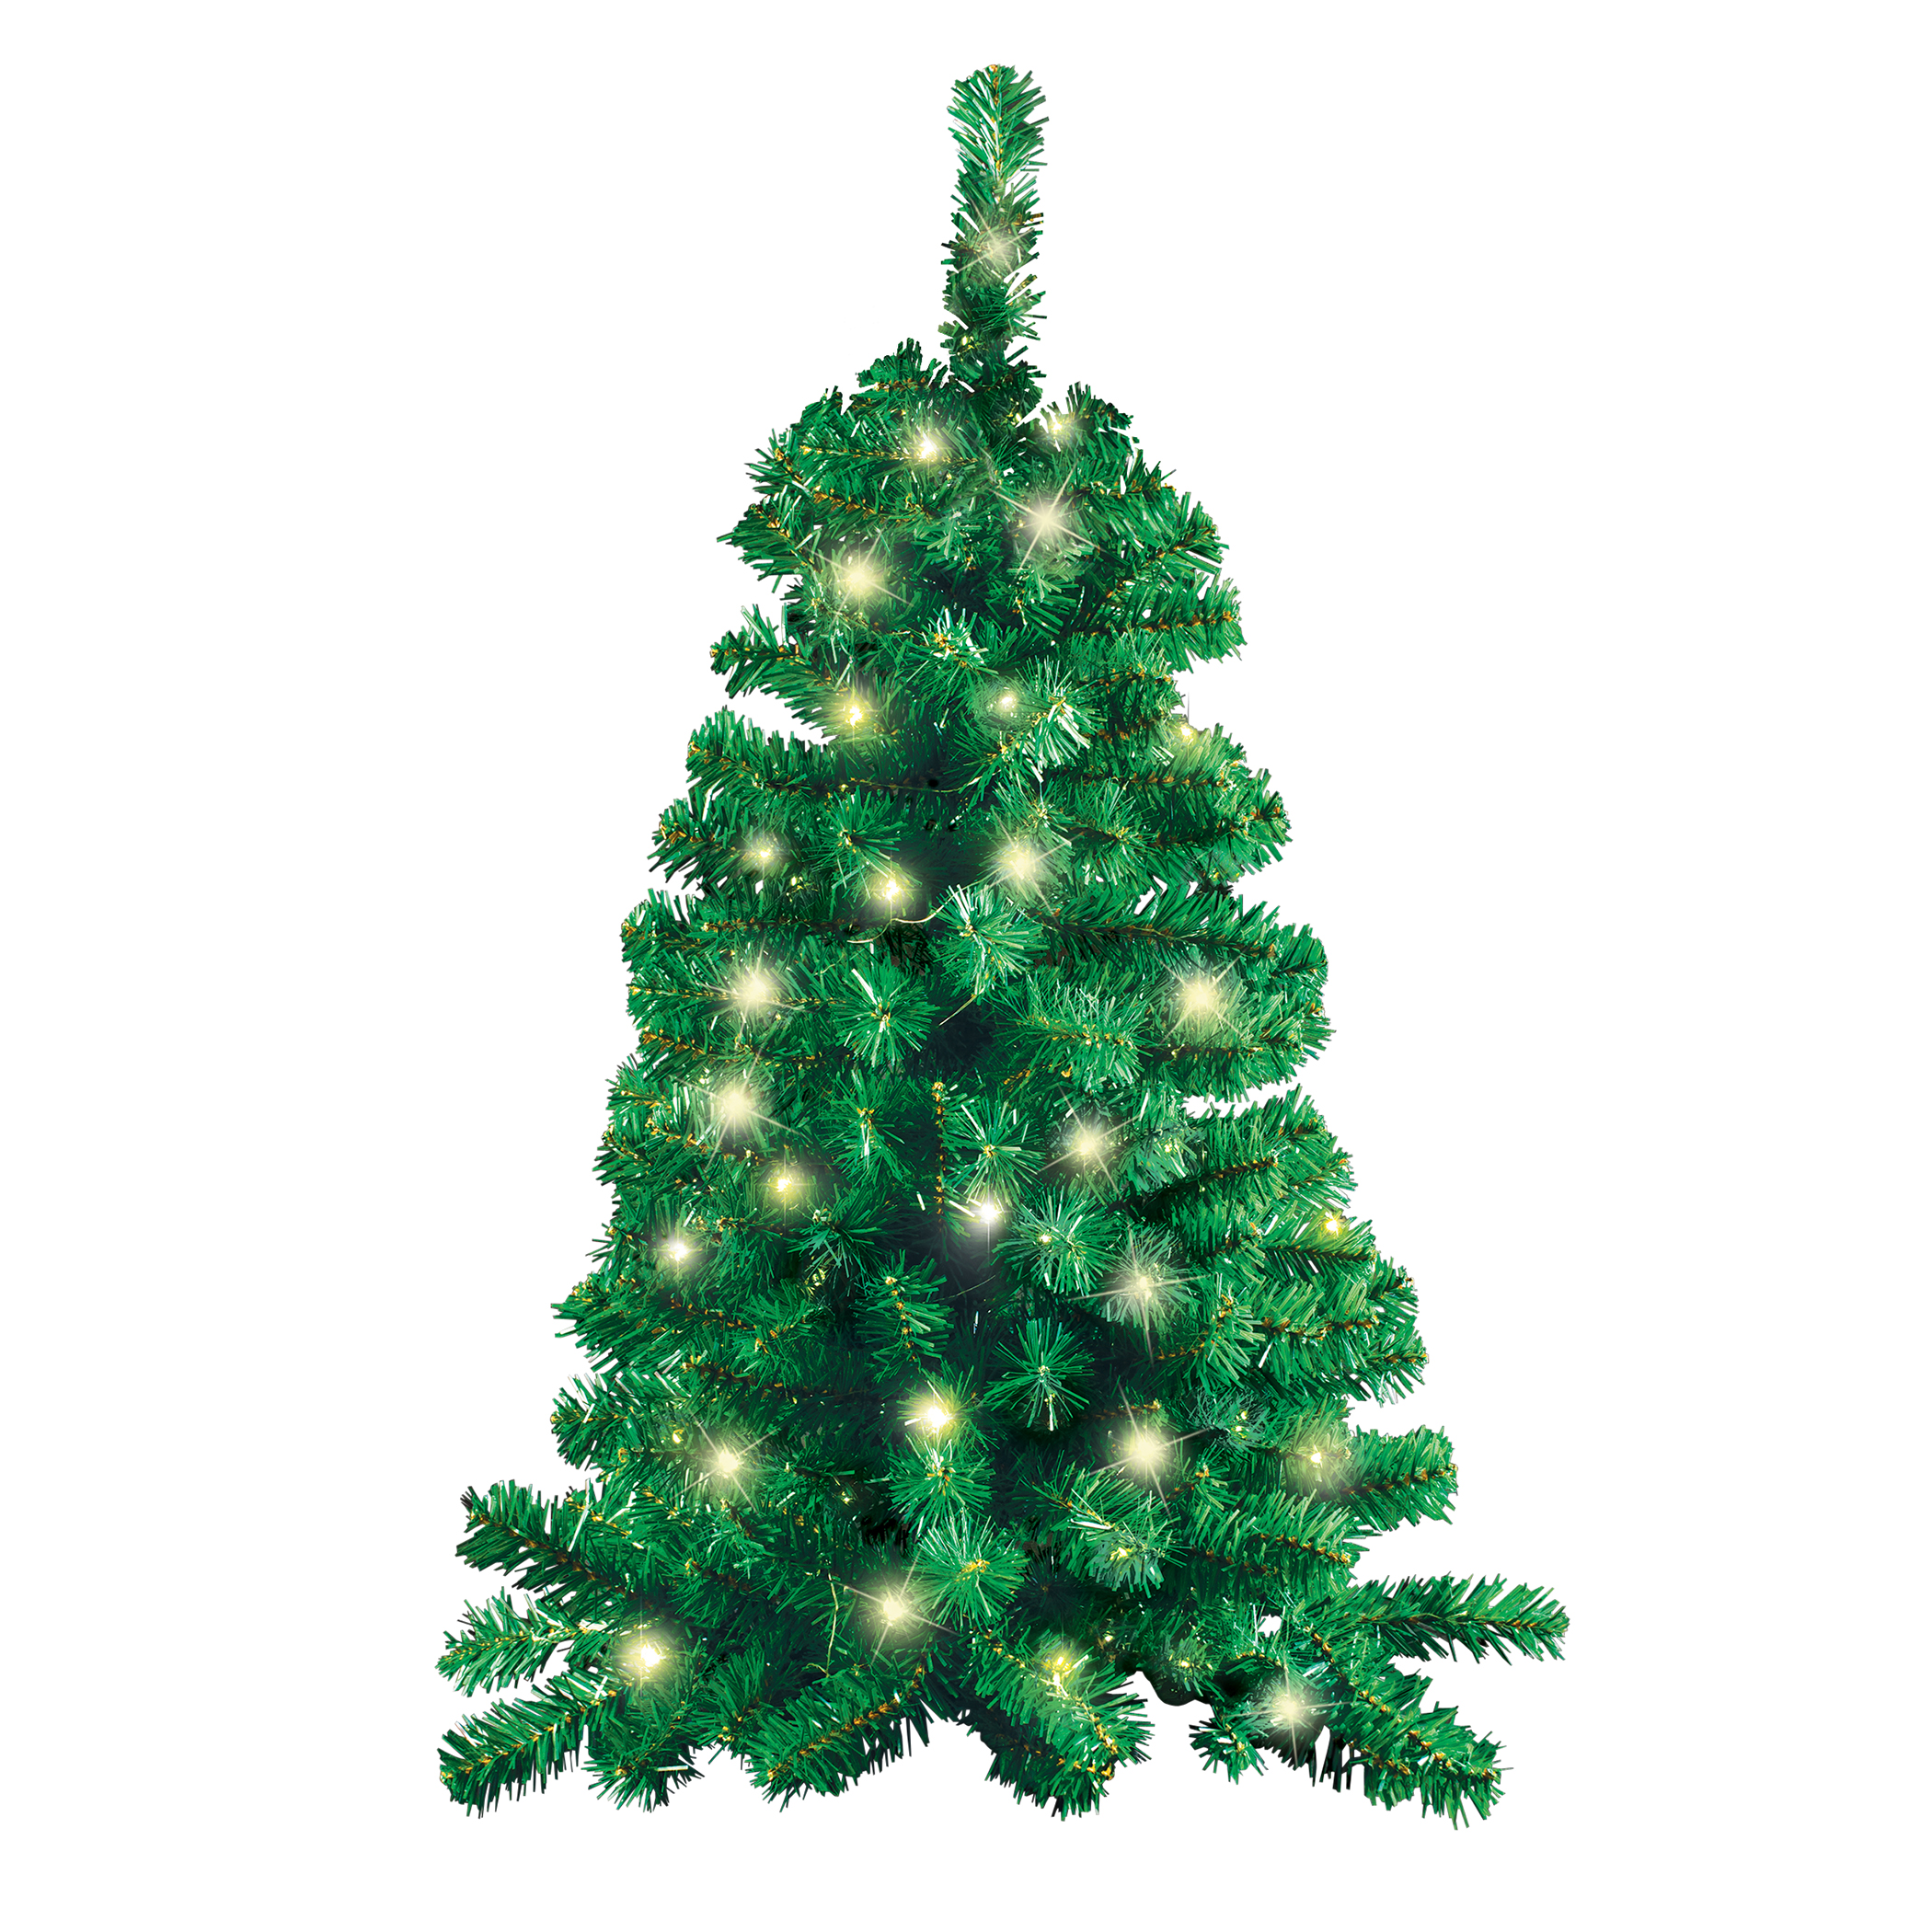 3 Foot Pre Lit Led Flat Wall Hanging Christmas Tree Walmart Com Walmart Com